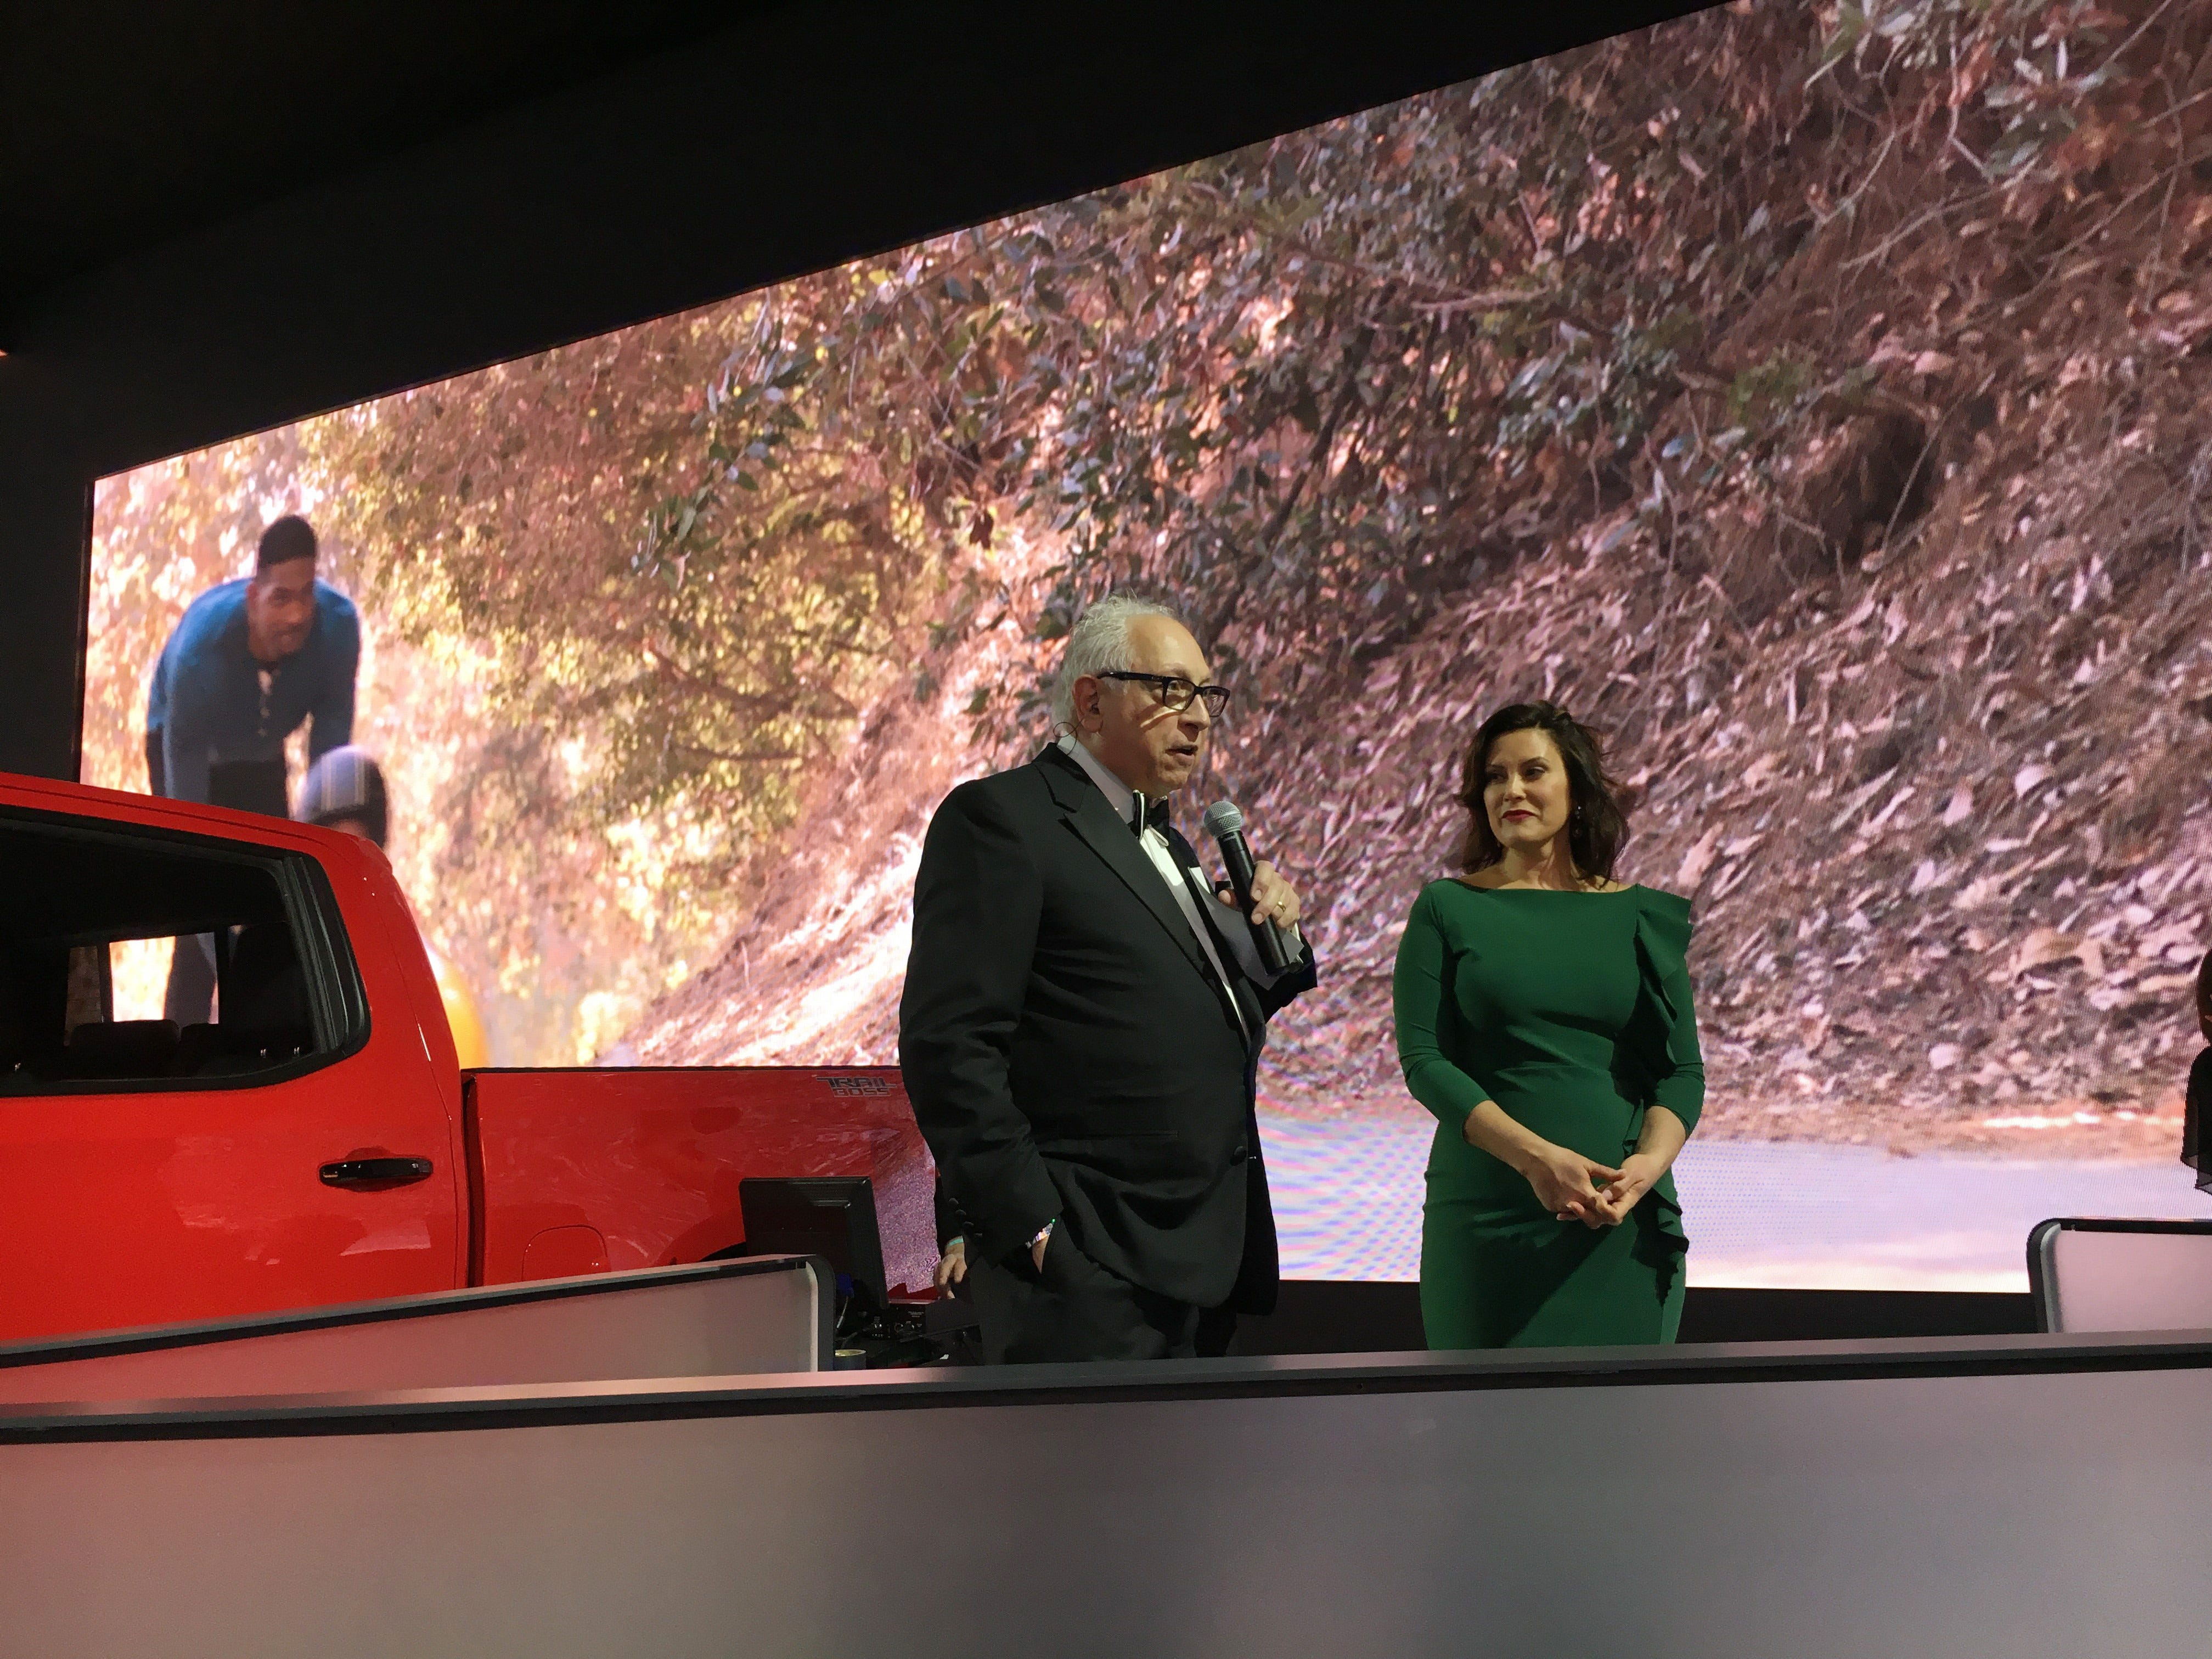 Paul W. Smith interviews Michigan Gov. Gretchen Whitmer for WJR Radio during the Detroit auto show Charity Preview gala at Cobo Center in Detroit on Friday evening, Jan. 18, 2019.